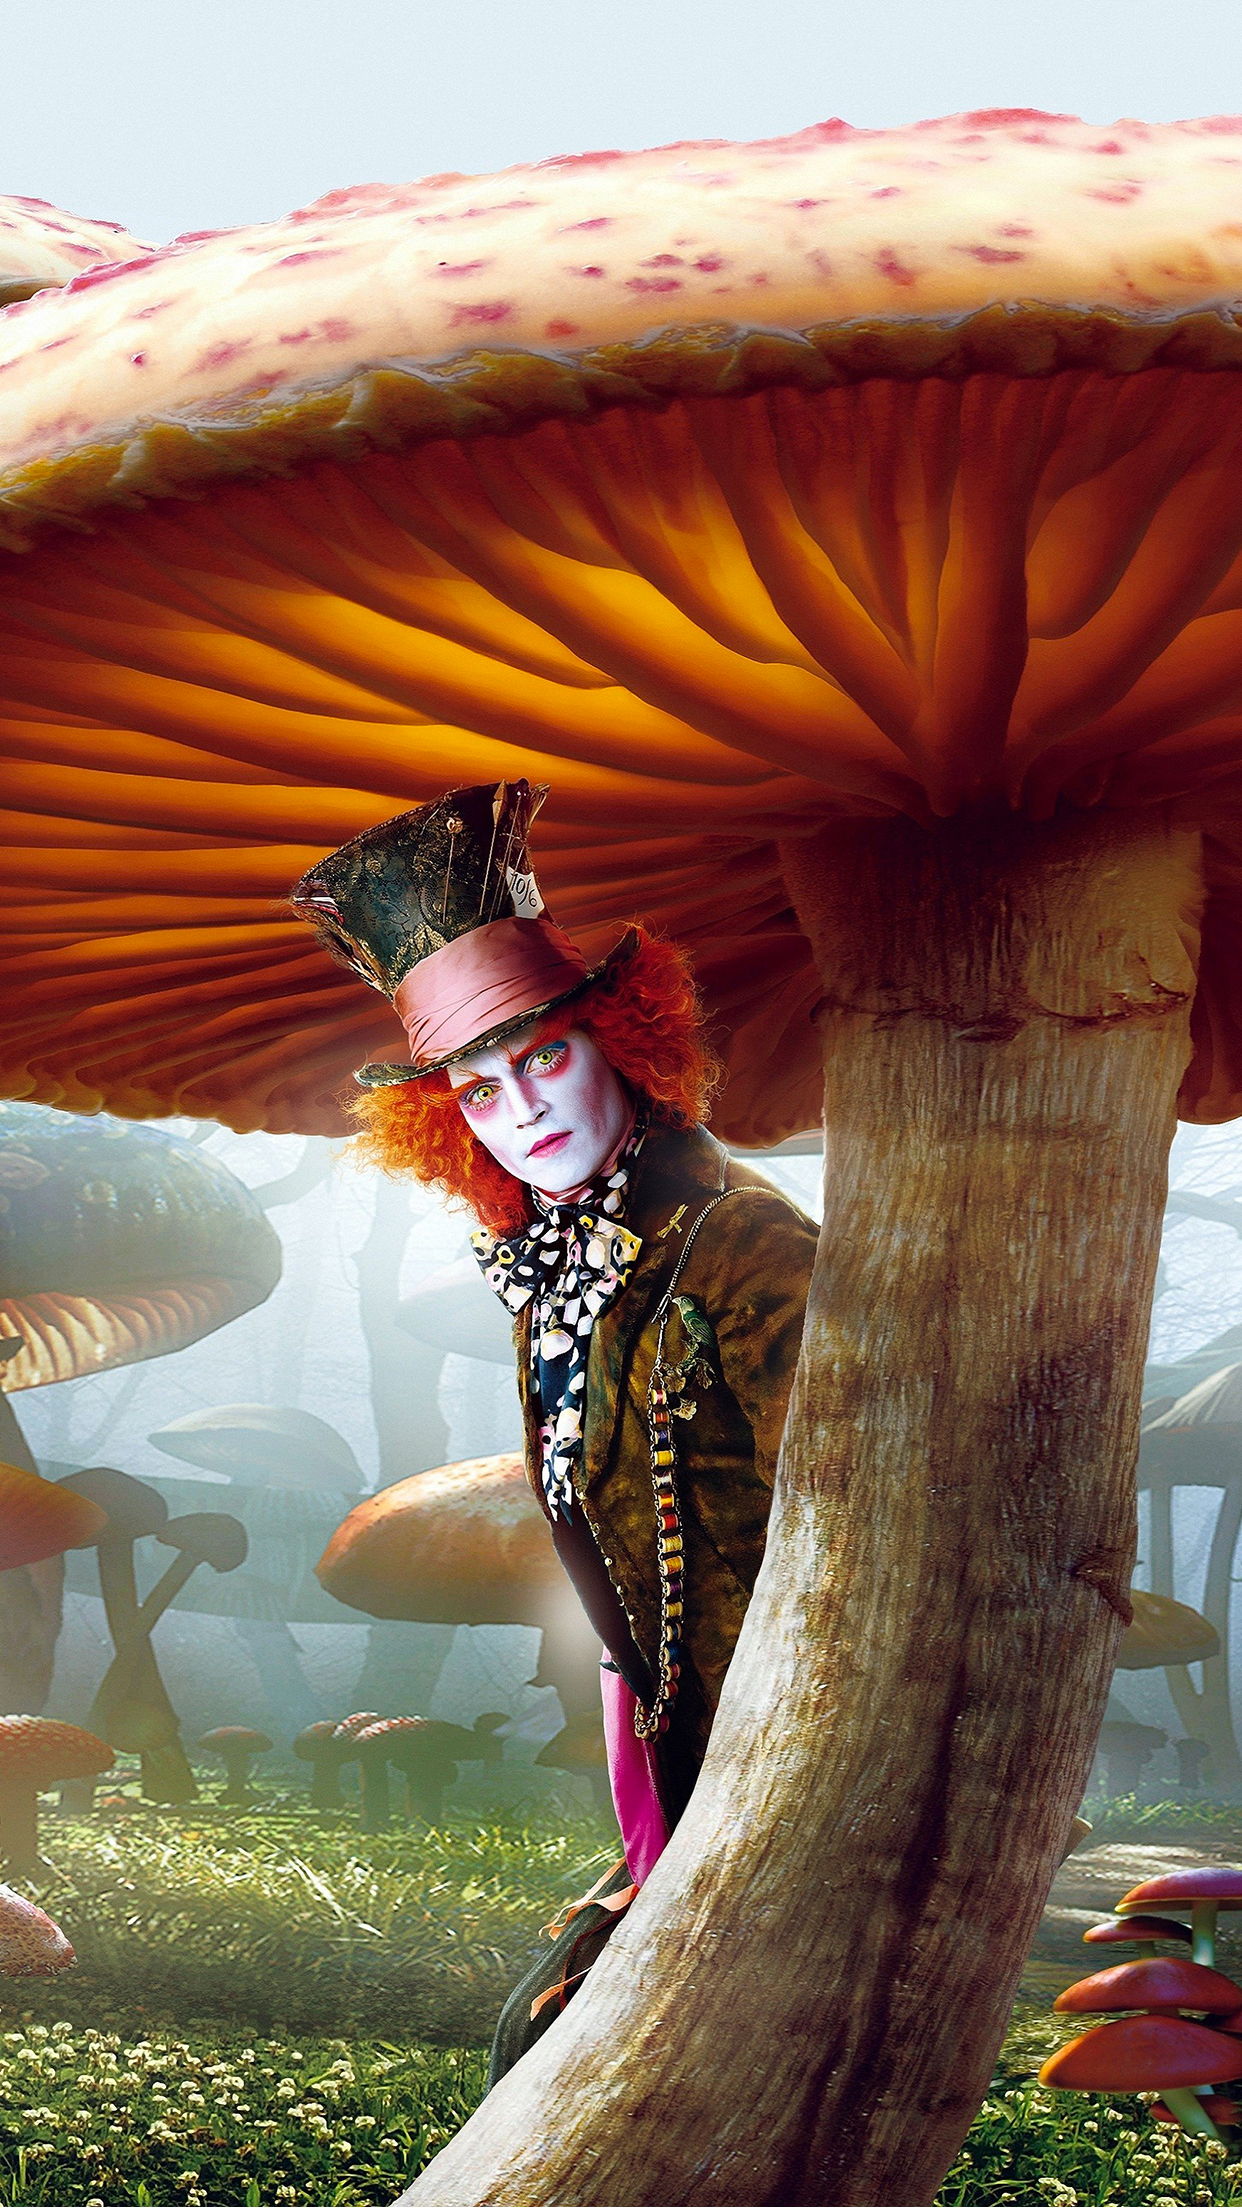 Alice in Wonderland depp mad hatter Wallpaper for iPhone X ...